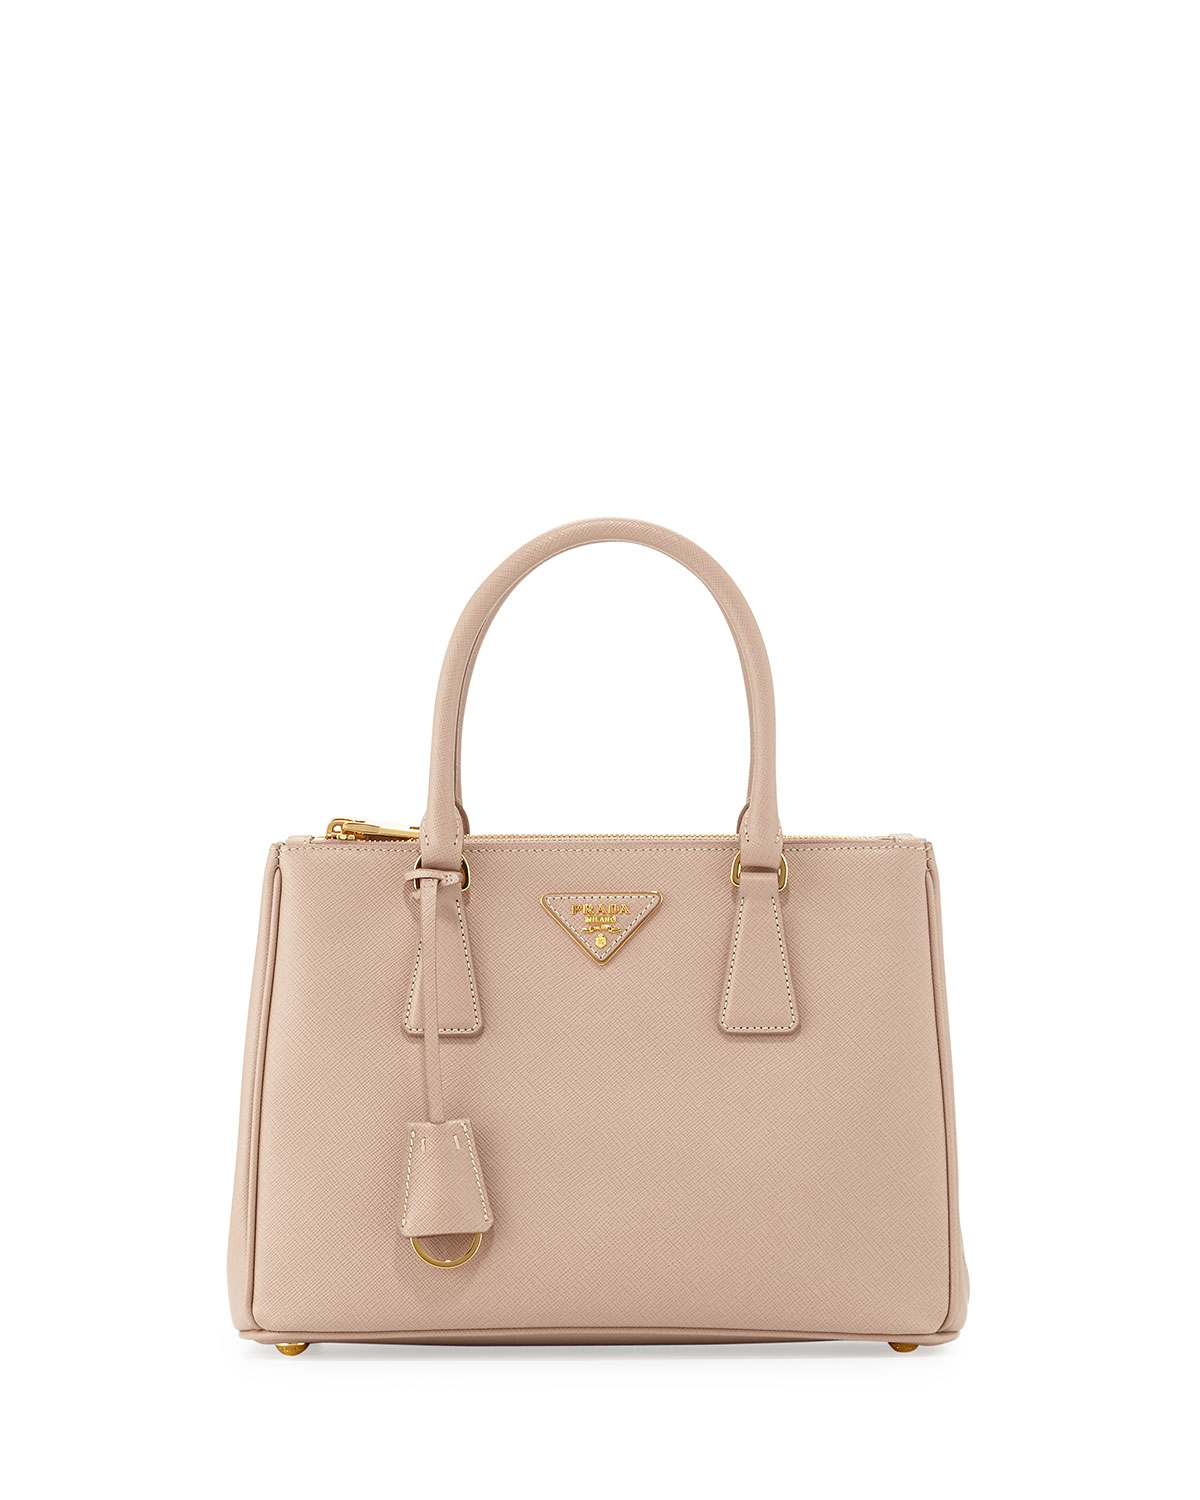 41c529bebe7294 Prada Saffiano Lux Small Double-Zip Tote Bag, Blush (Cammeo ...